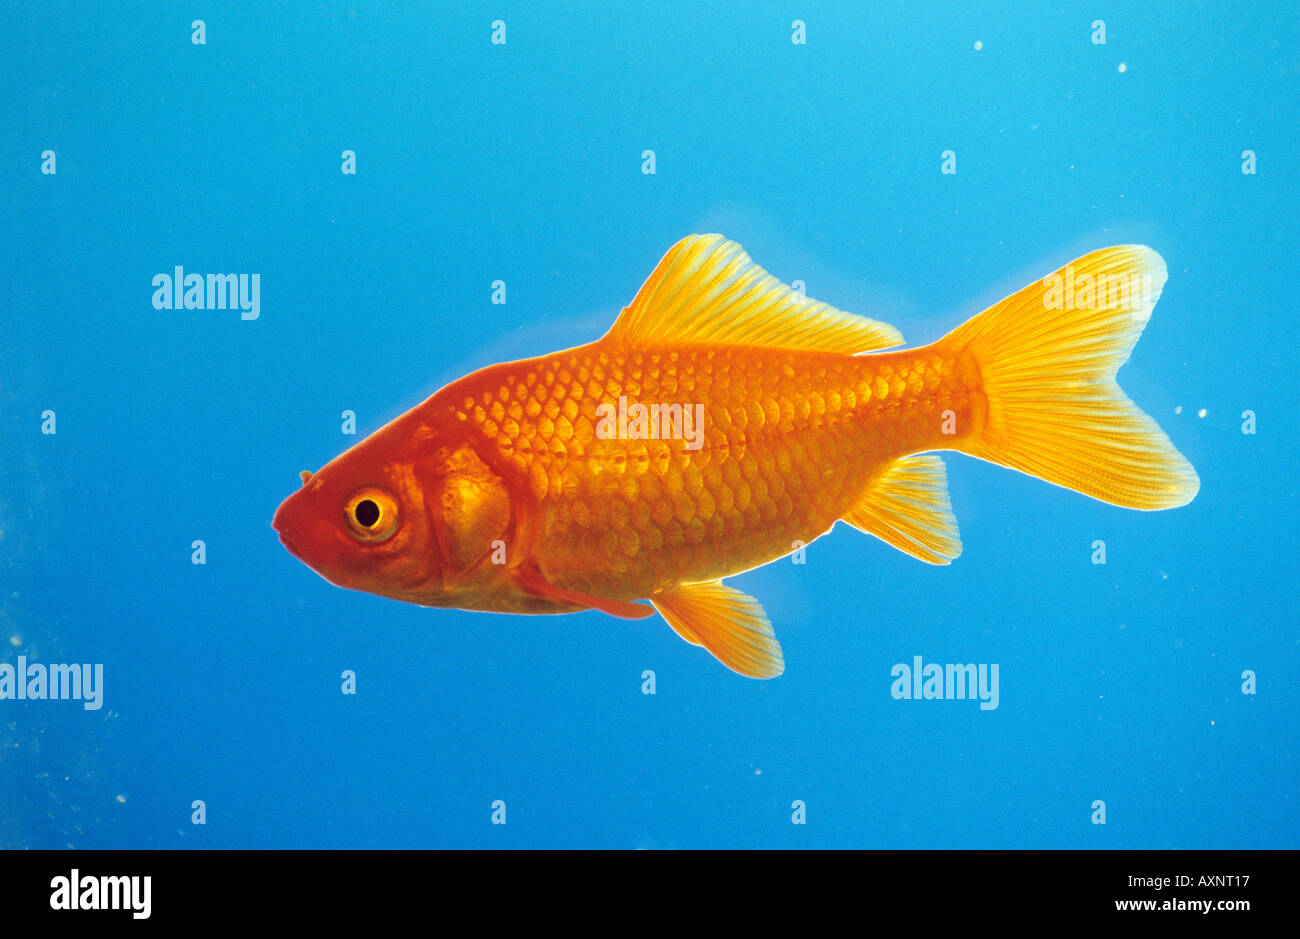 Goldfish (Carassius auratus) seen side-on Stock Photo